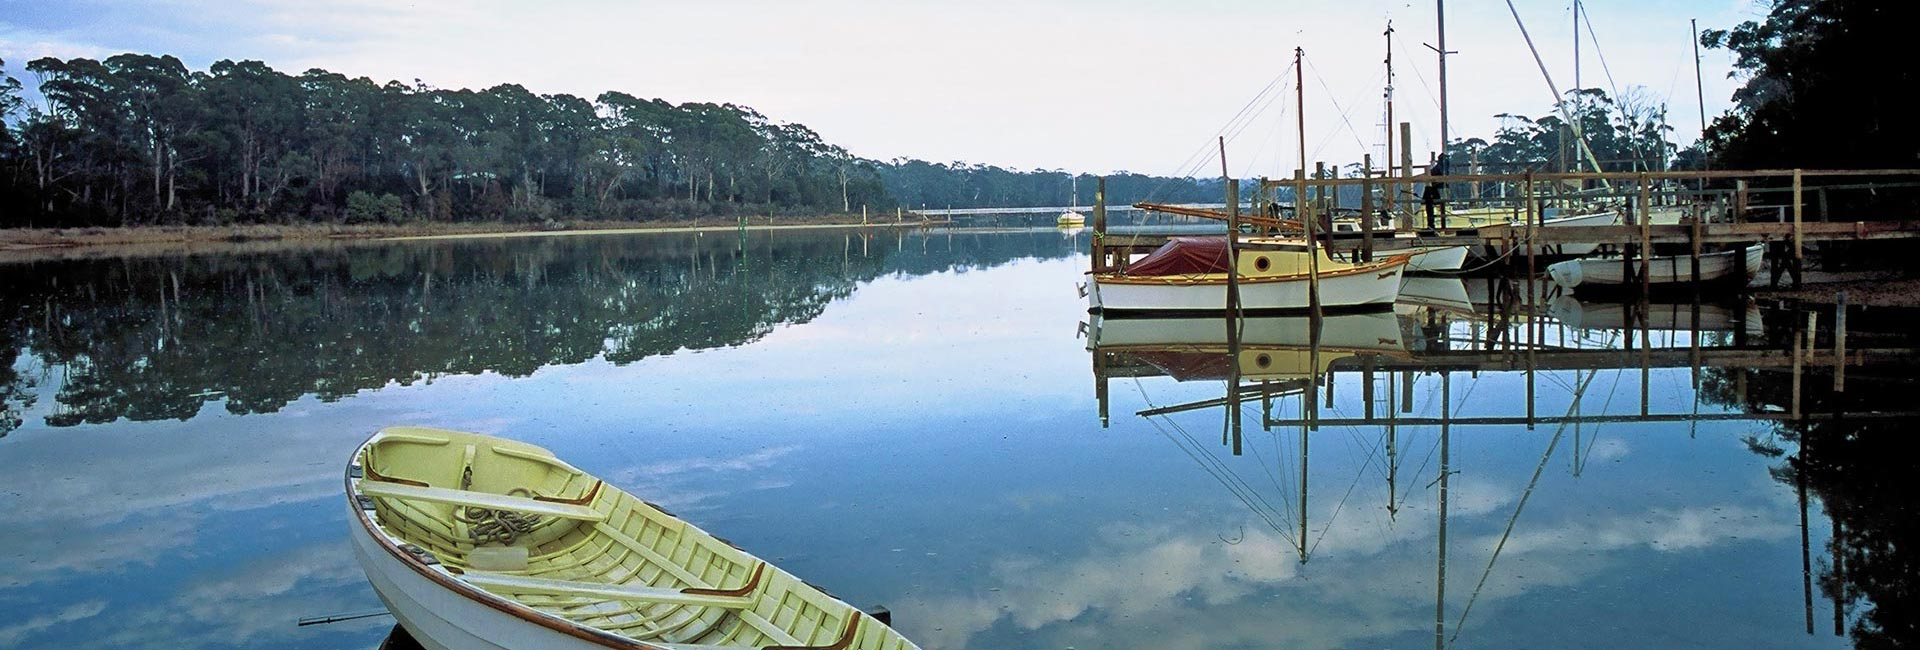 Our Location   PORT SORELL IS LOCATED ON THE RUBICON ESTUARY